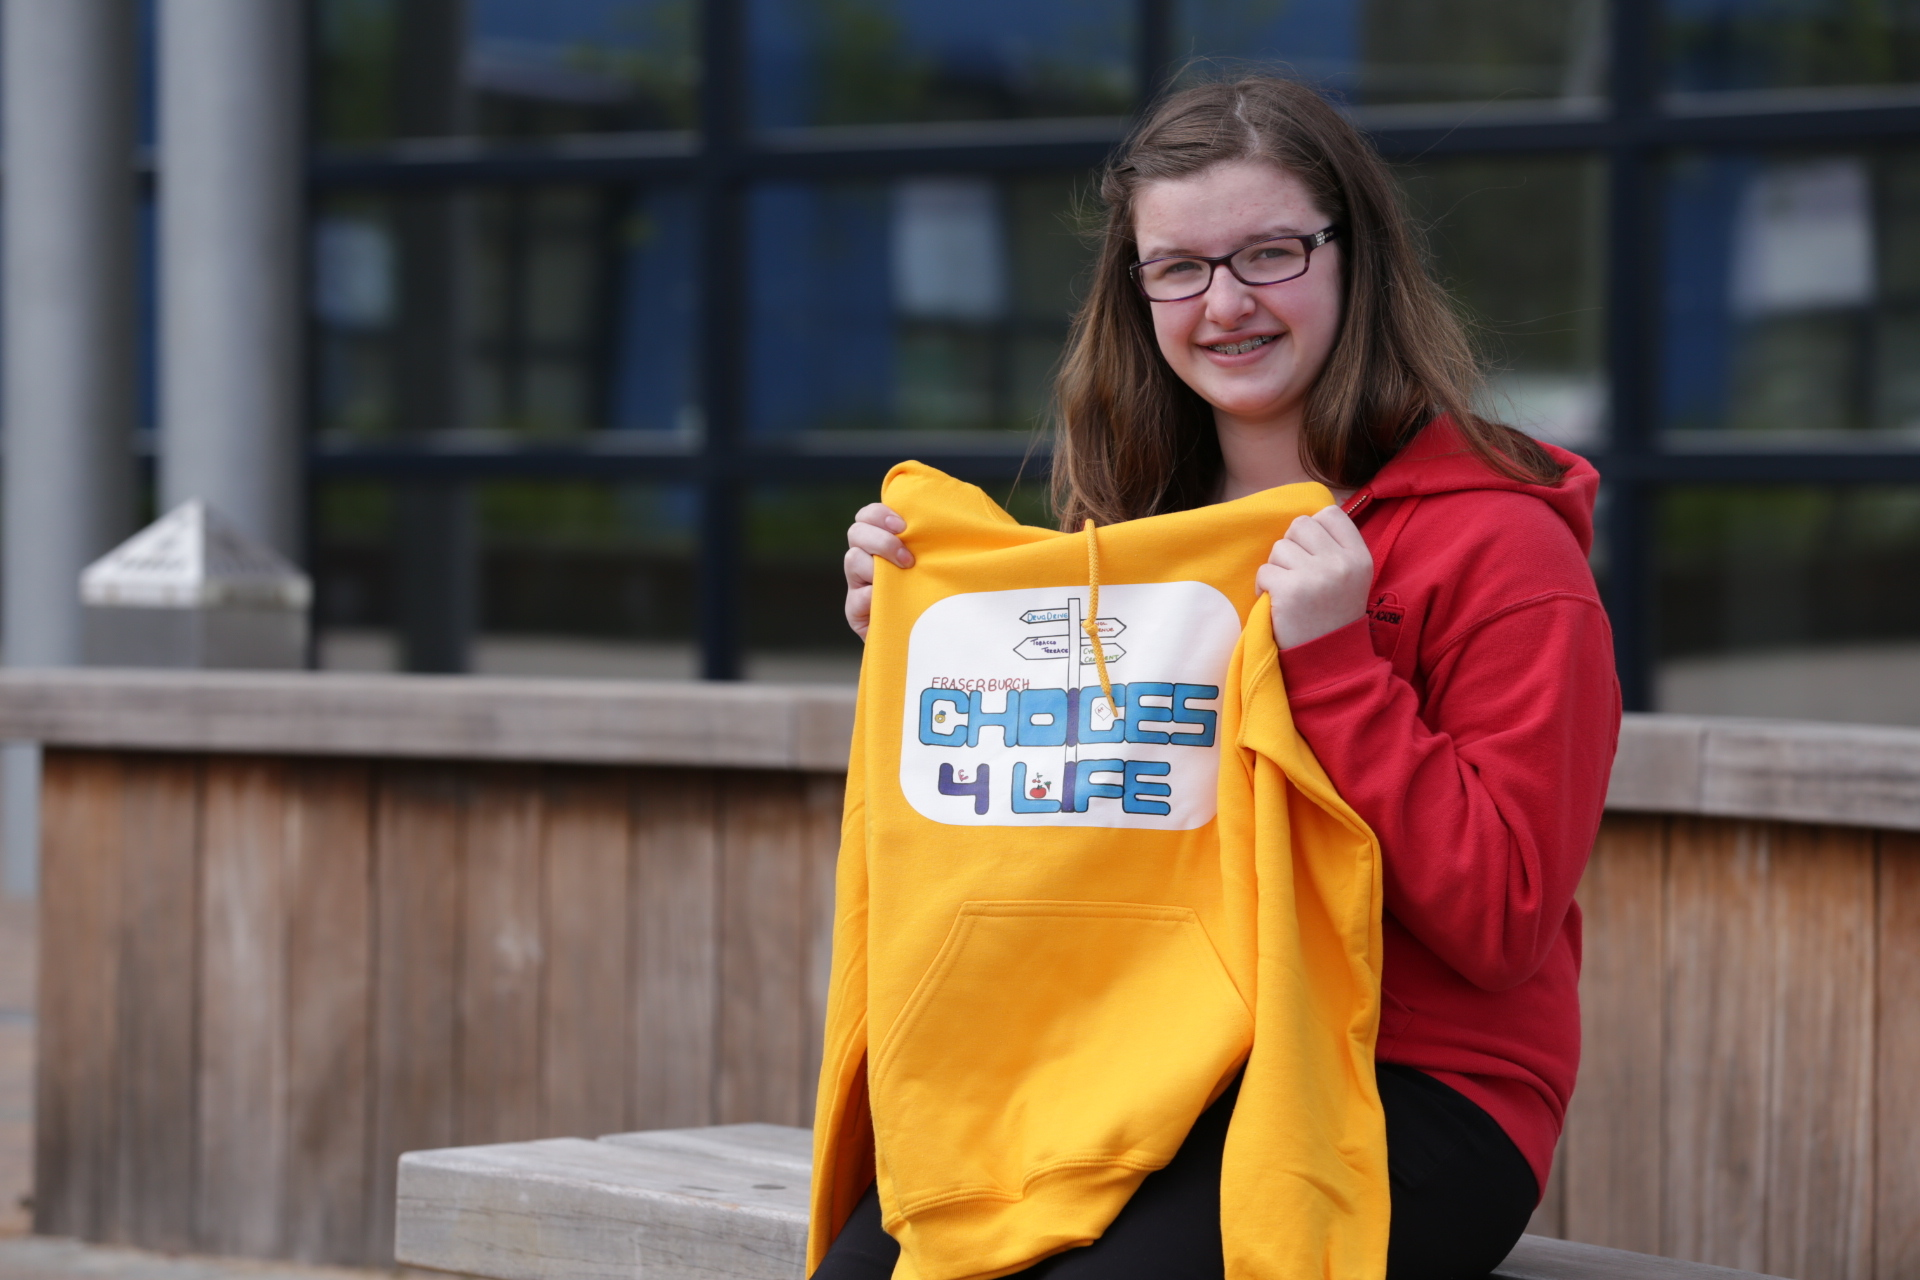 Georgia Morrison, 13,  designed the logo to be used on branding for future events